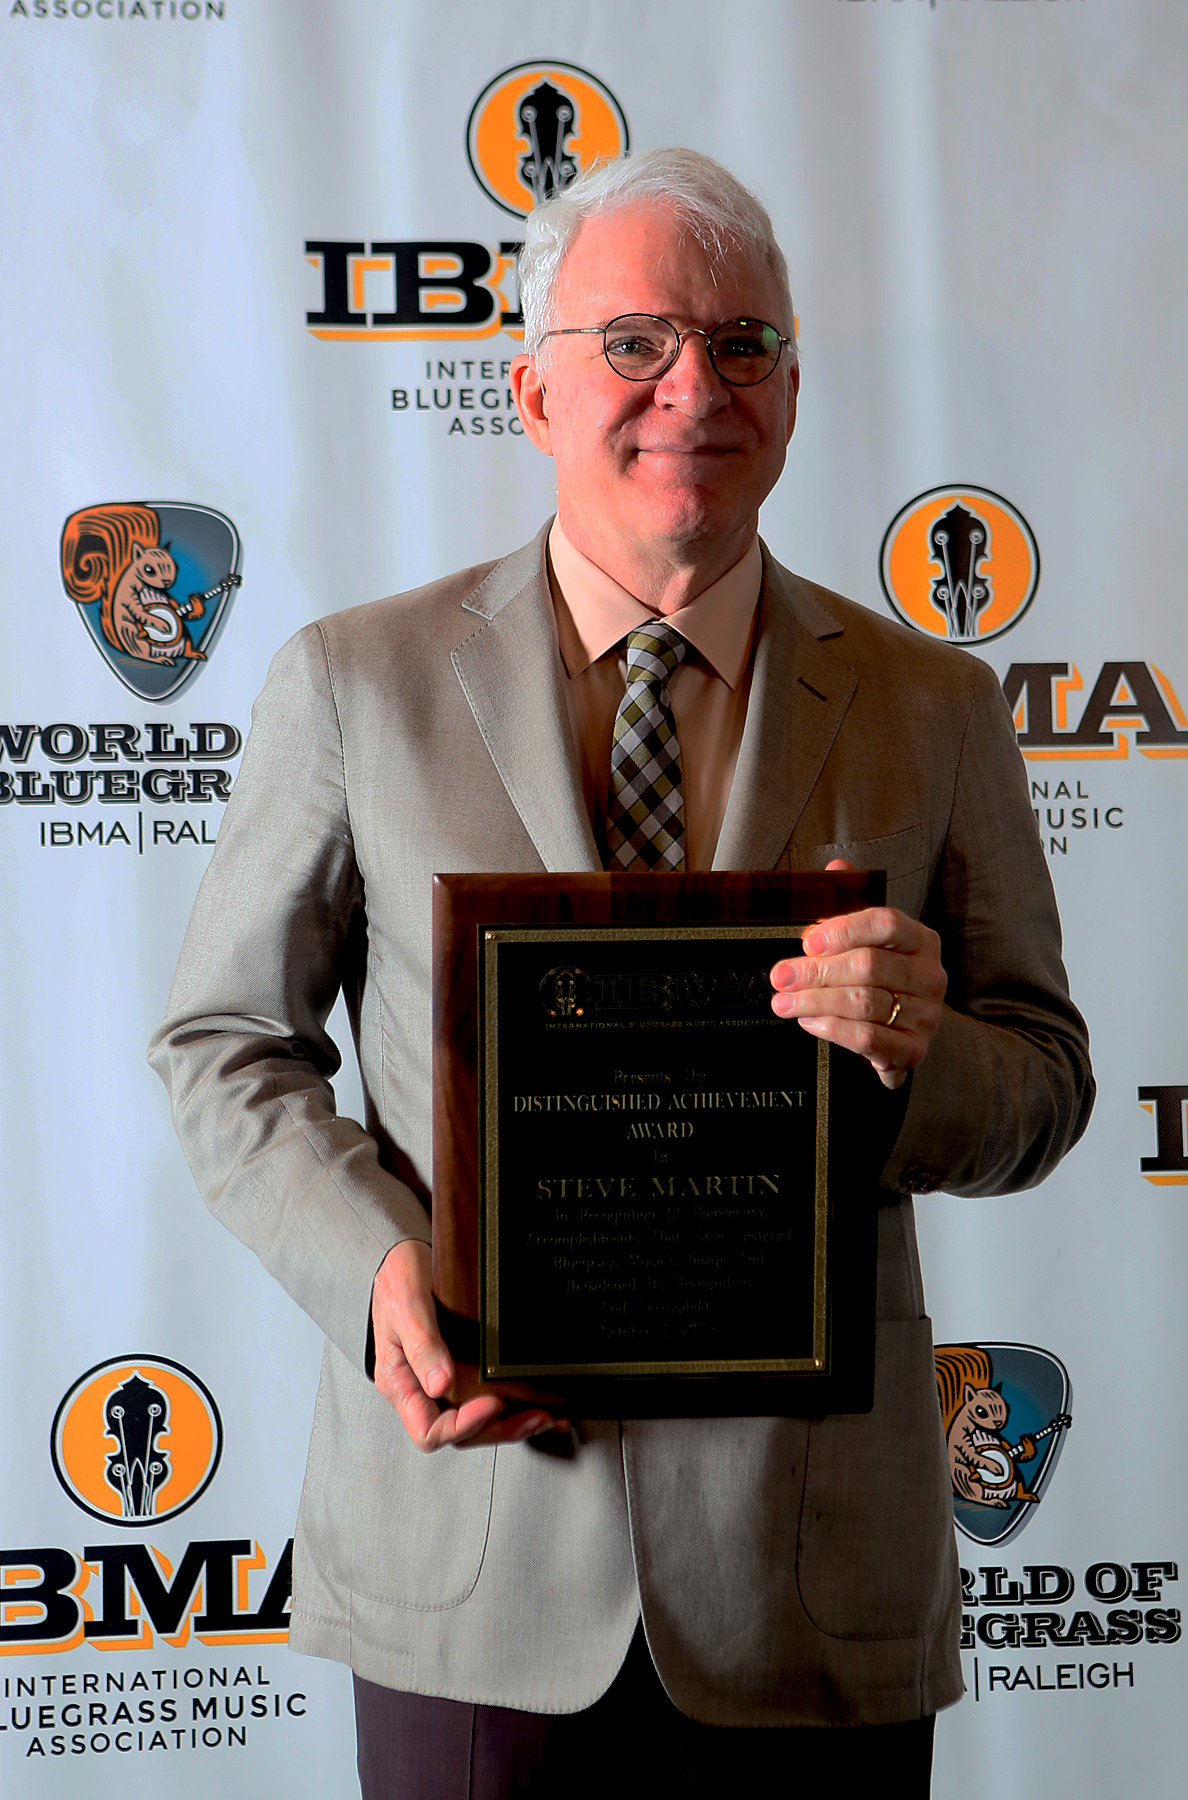 Here's Your Full 2015 IBMA Awards Winners List